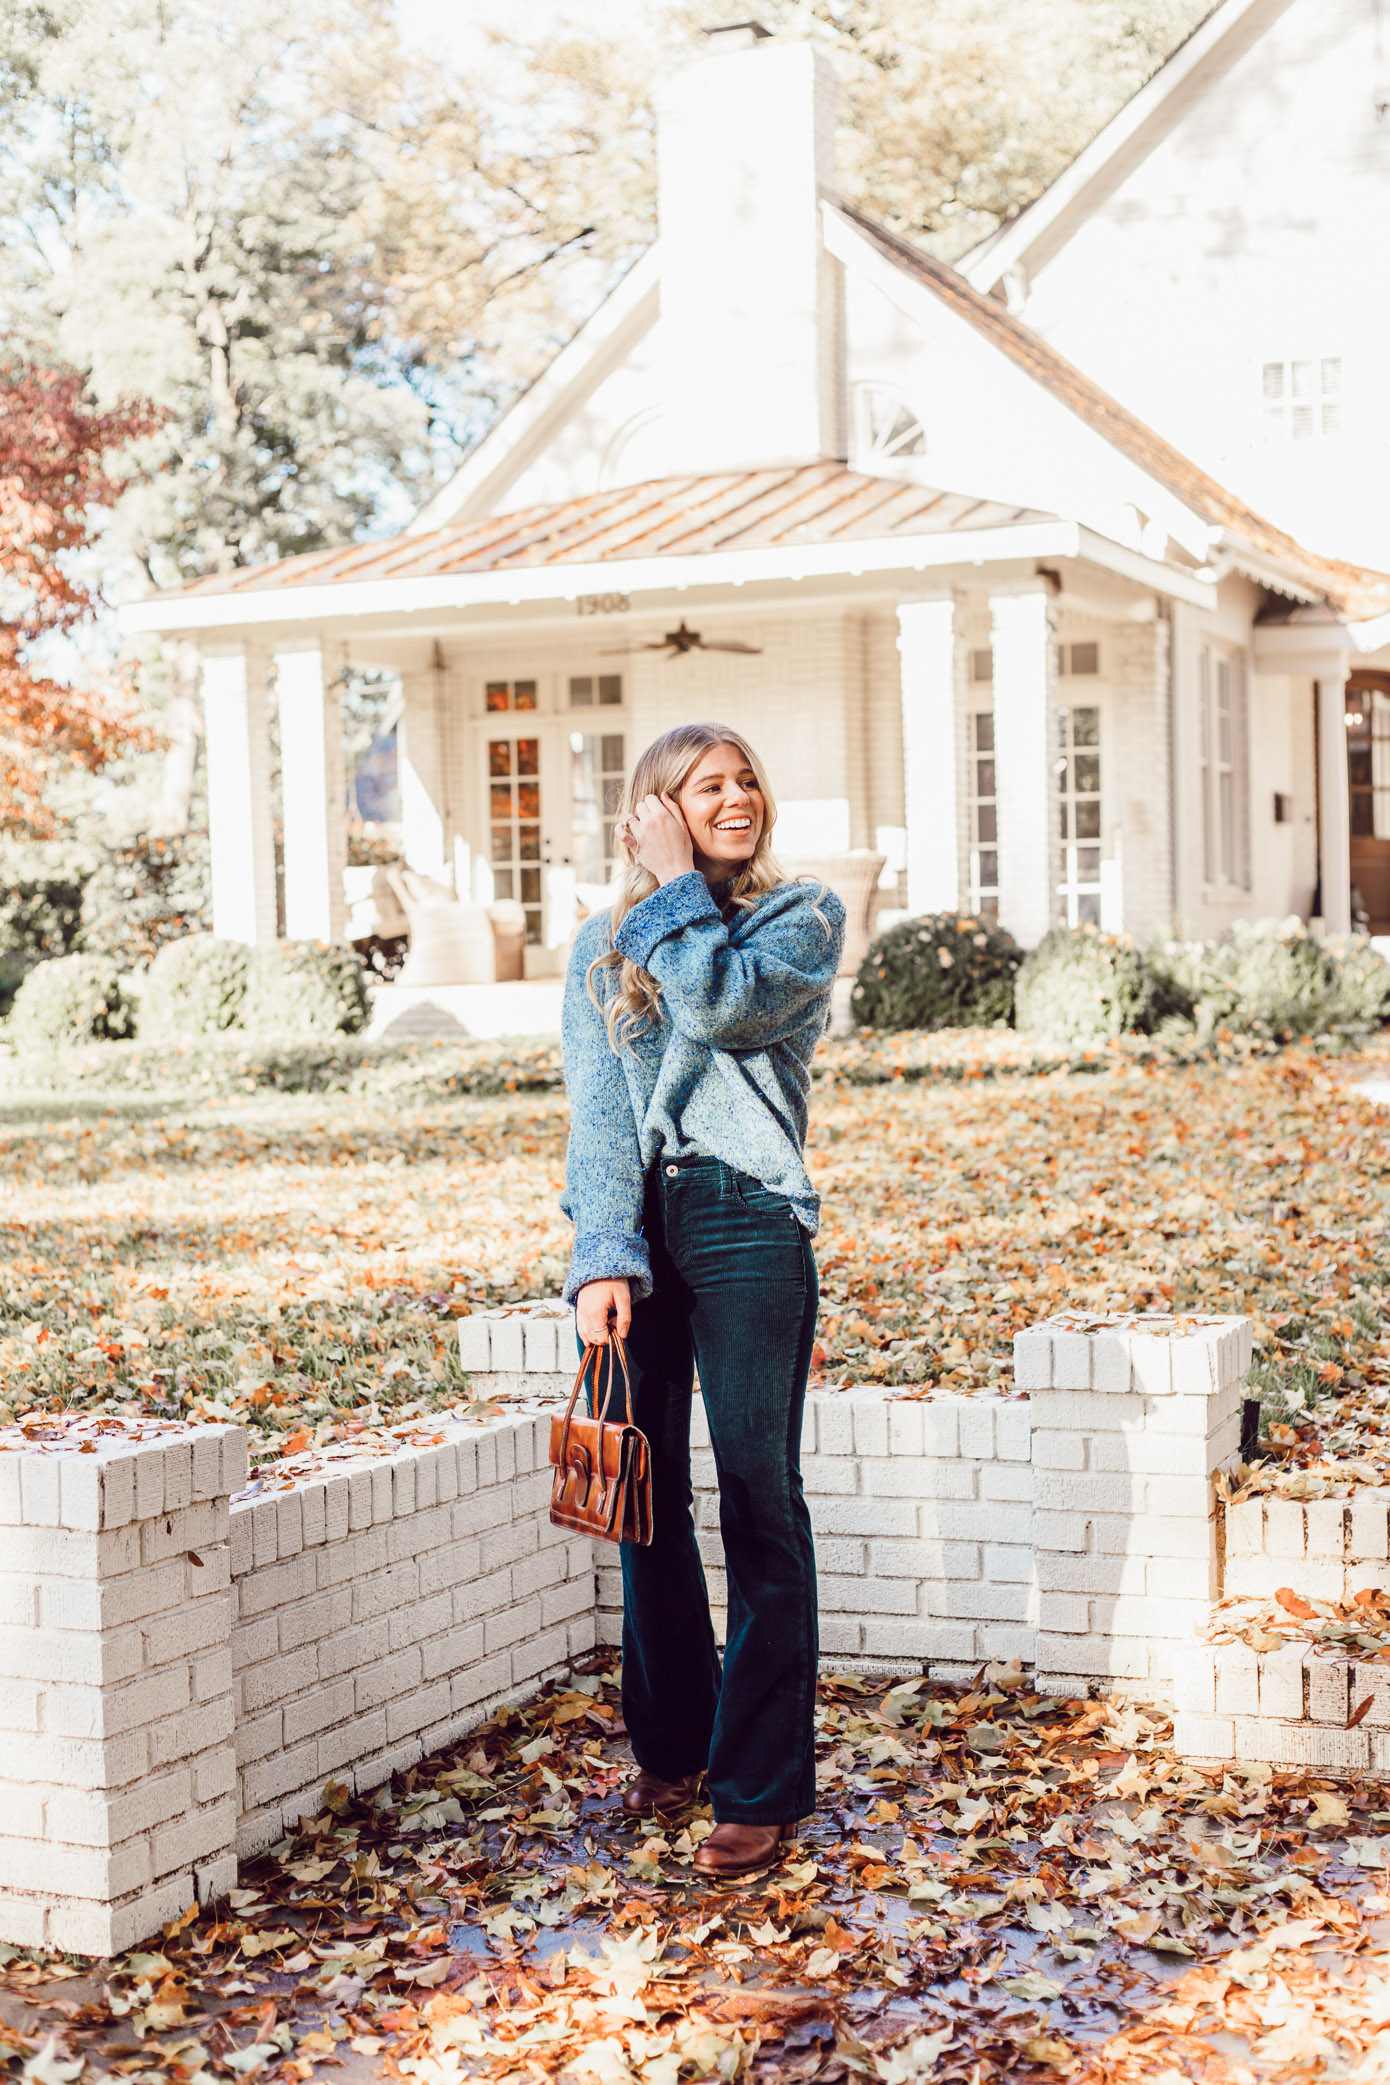 Anthropologie Sparkle Knit Turtleneck Sweater, Styling Corduroys for Winter | Must Try Winter Trend featured on Louella Reese Blog